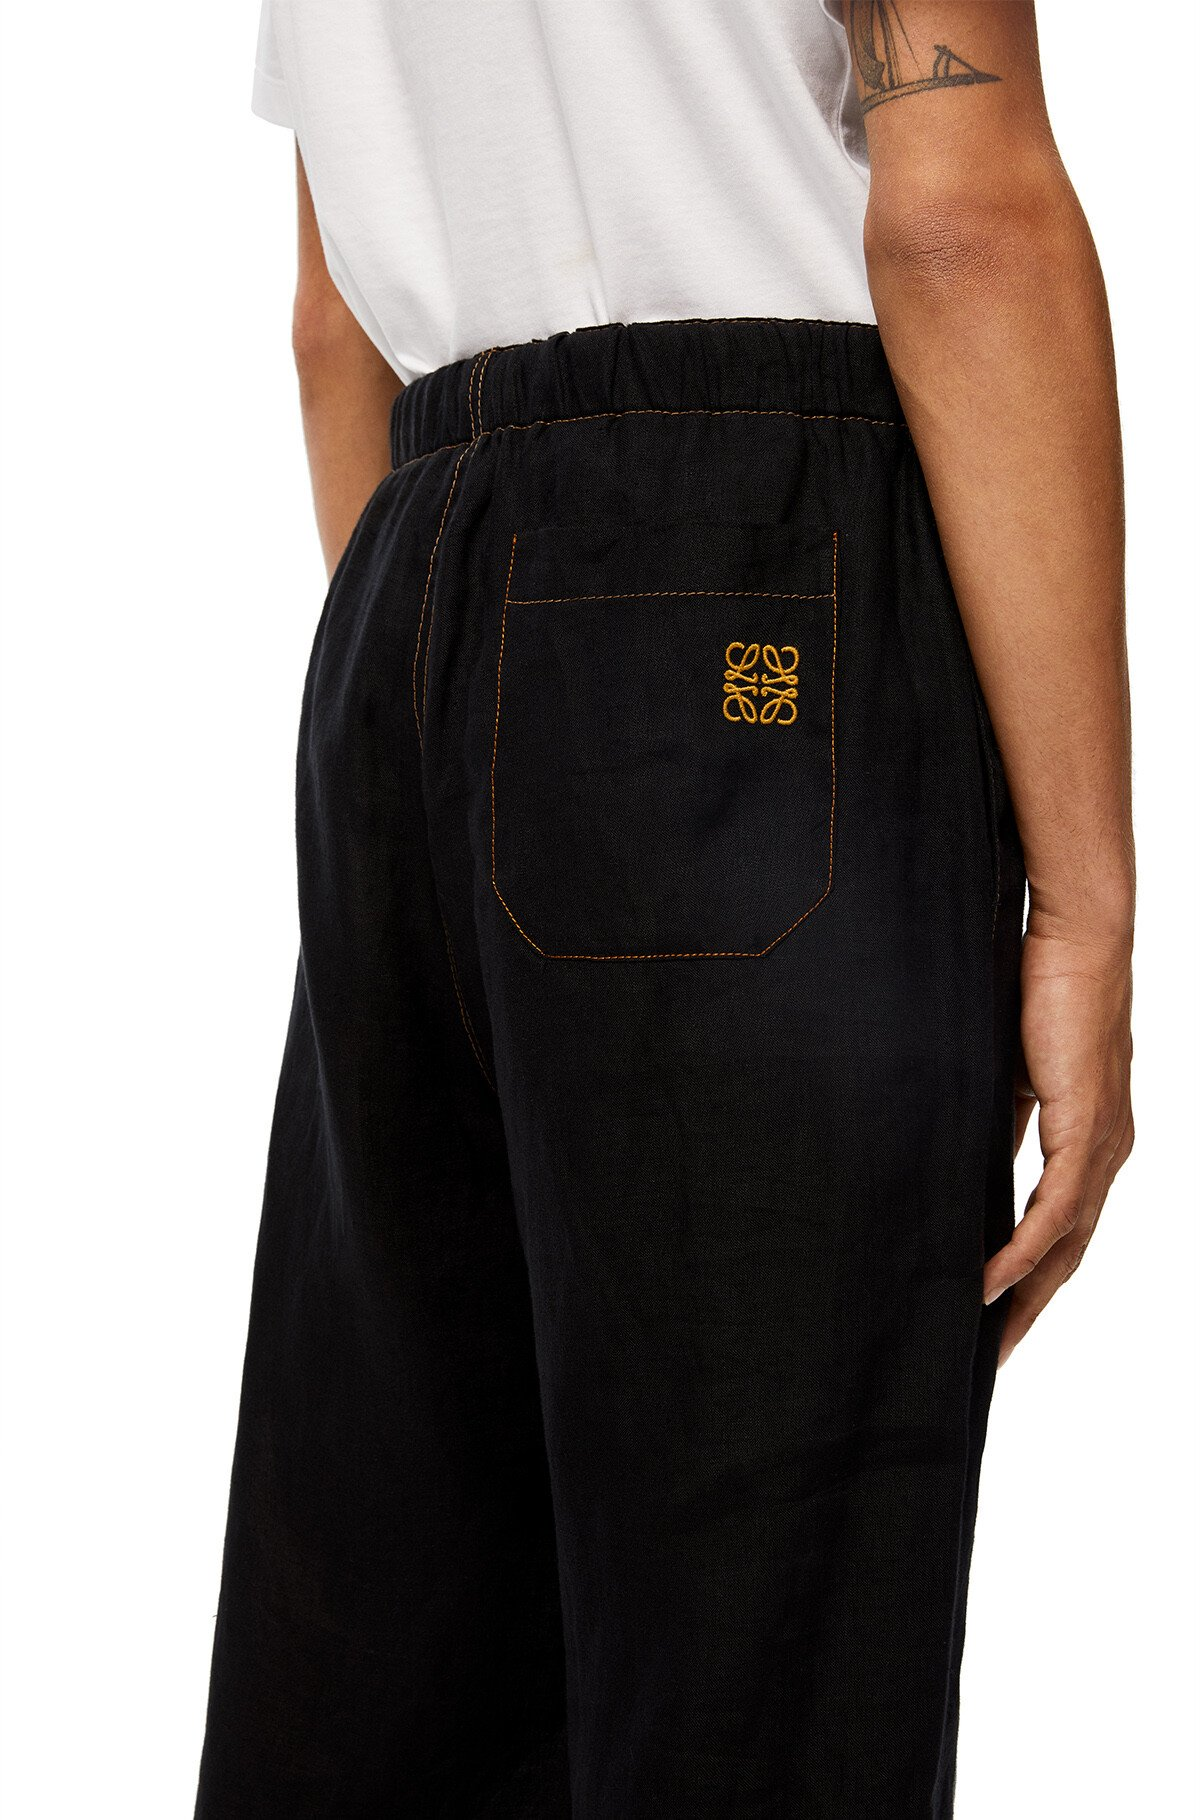 LOEWE Drawstring Trousers Navy Blue/Black front